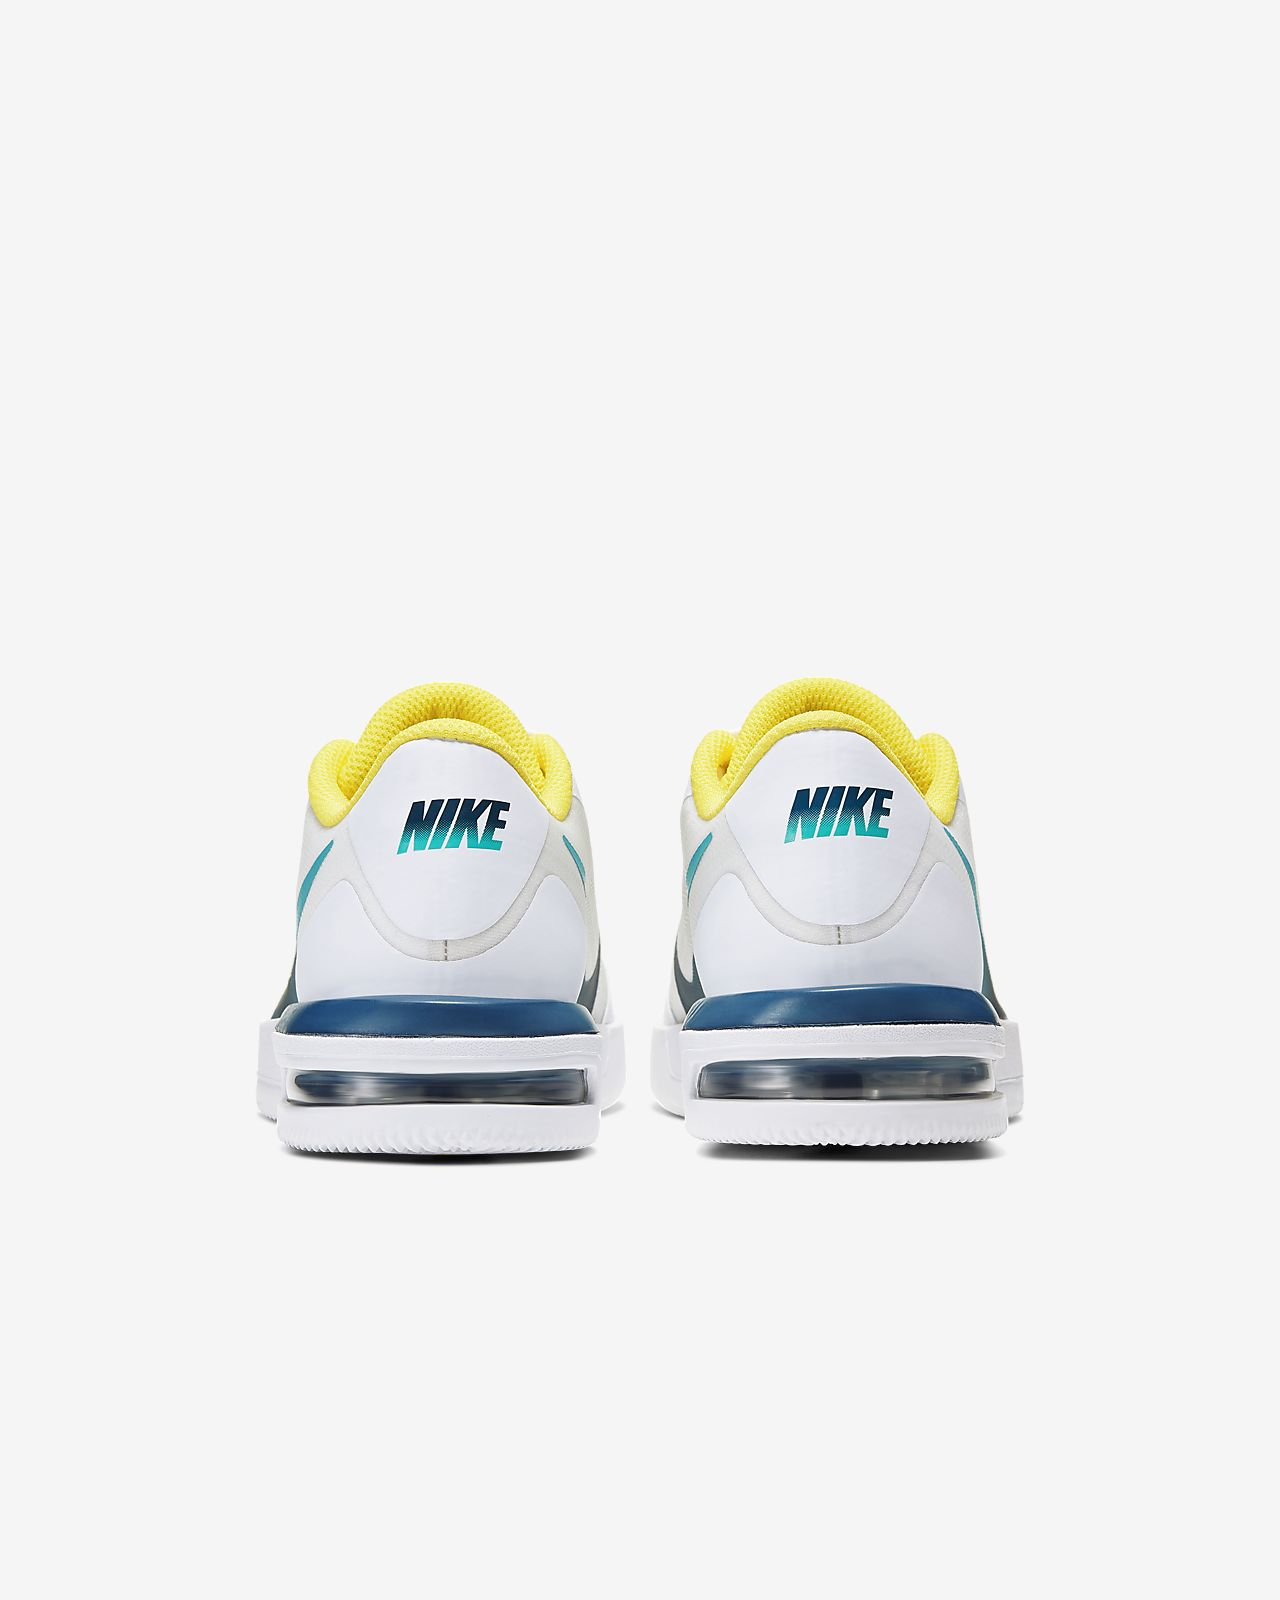 WOMEN'S NIKE AIR MAX VAPOR WING ALL COURT SHOES NIKE